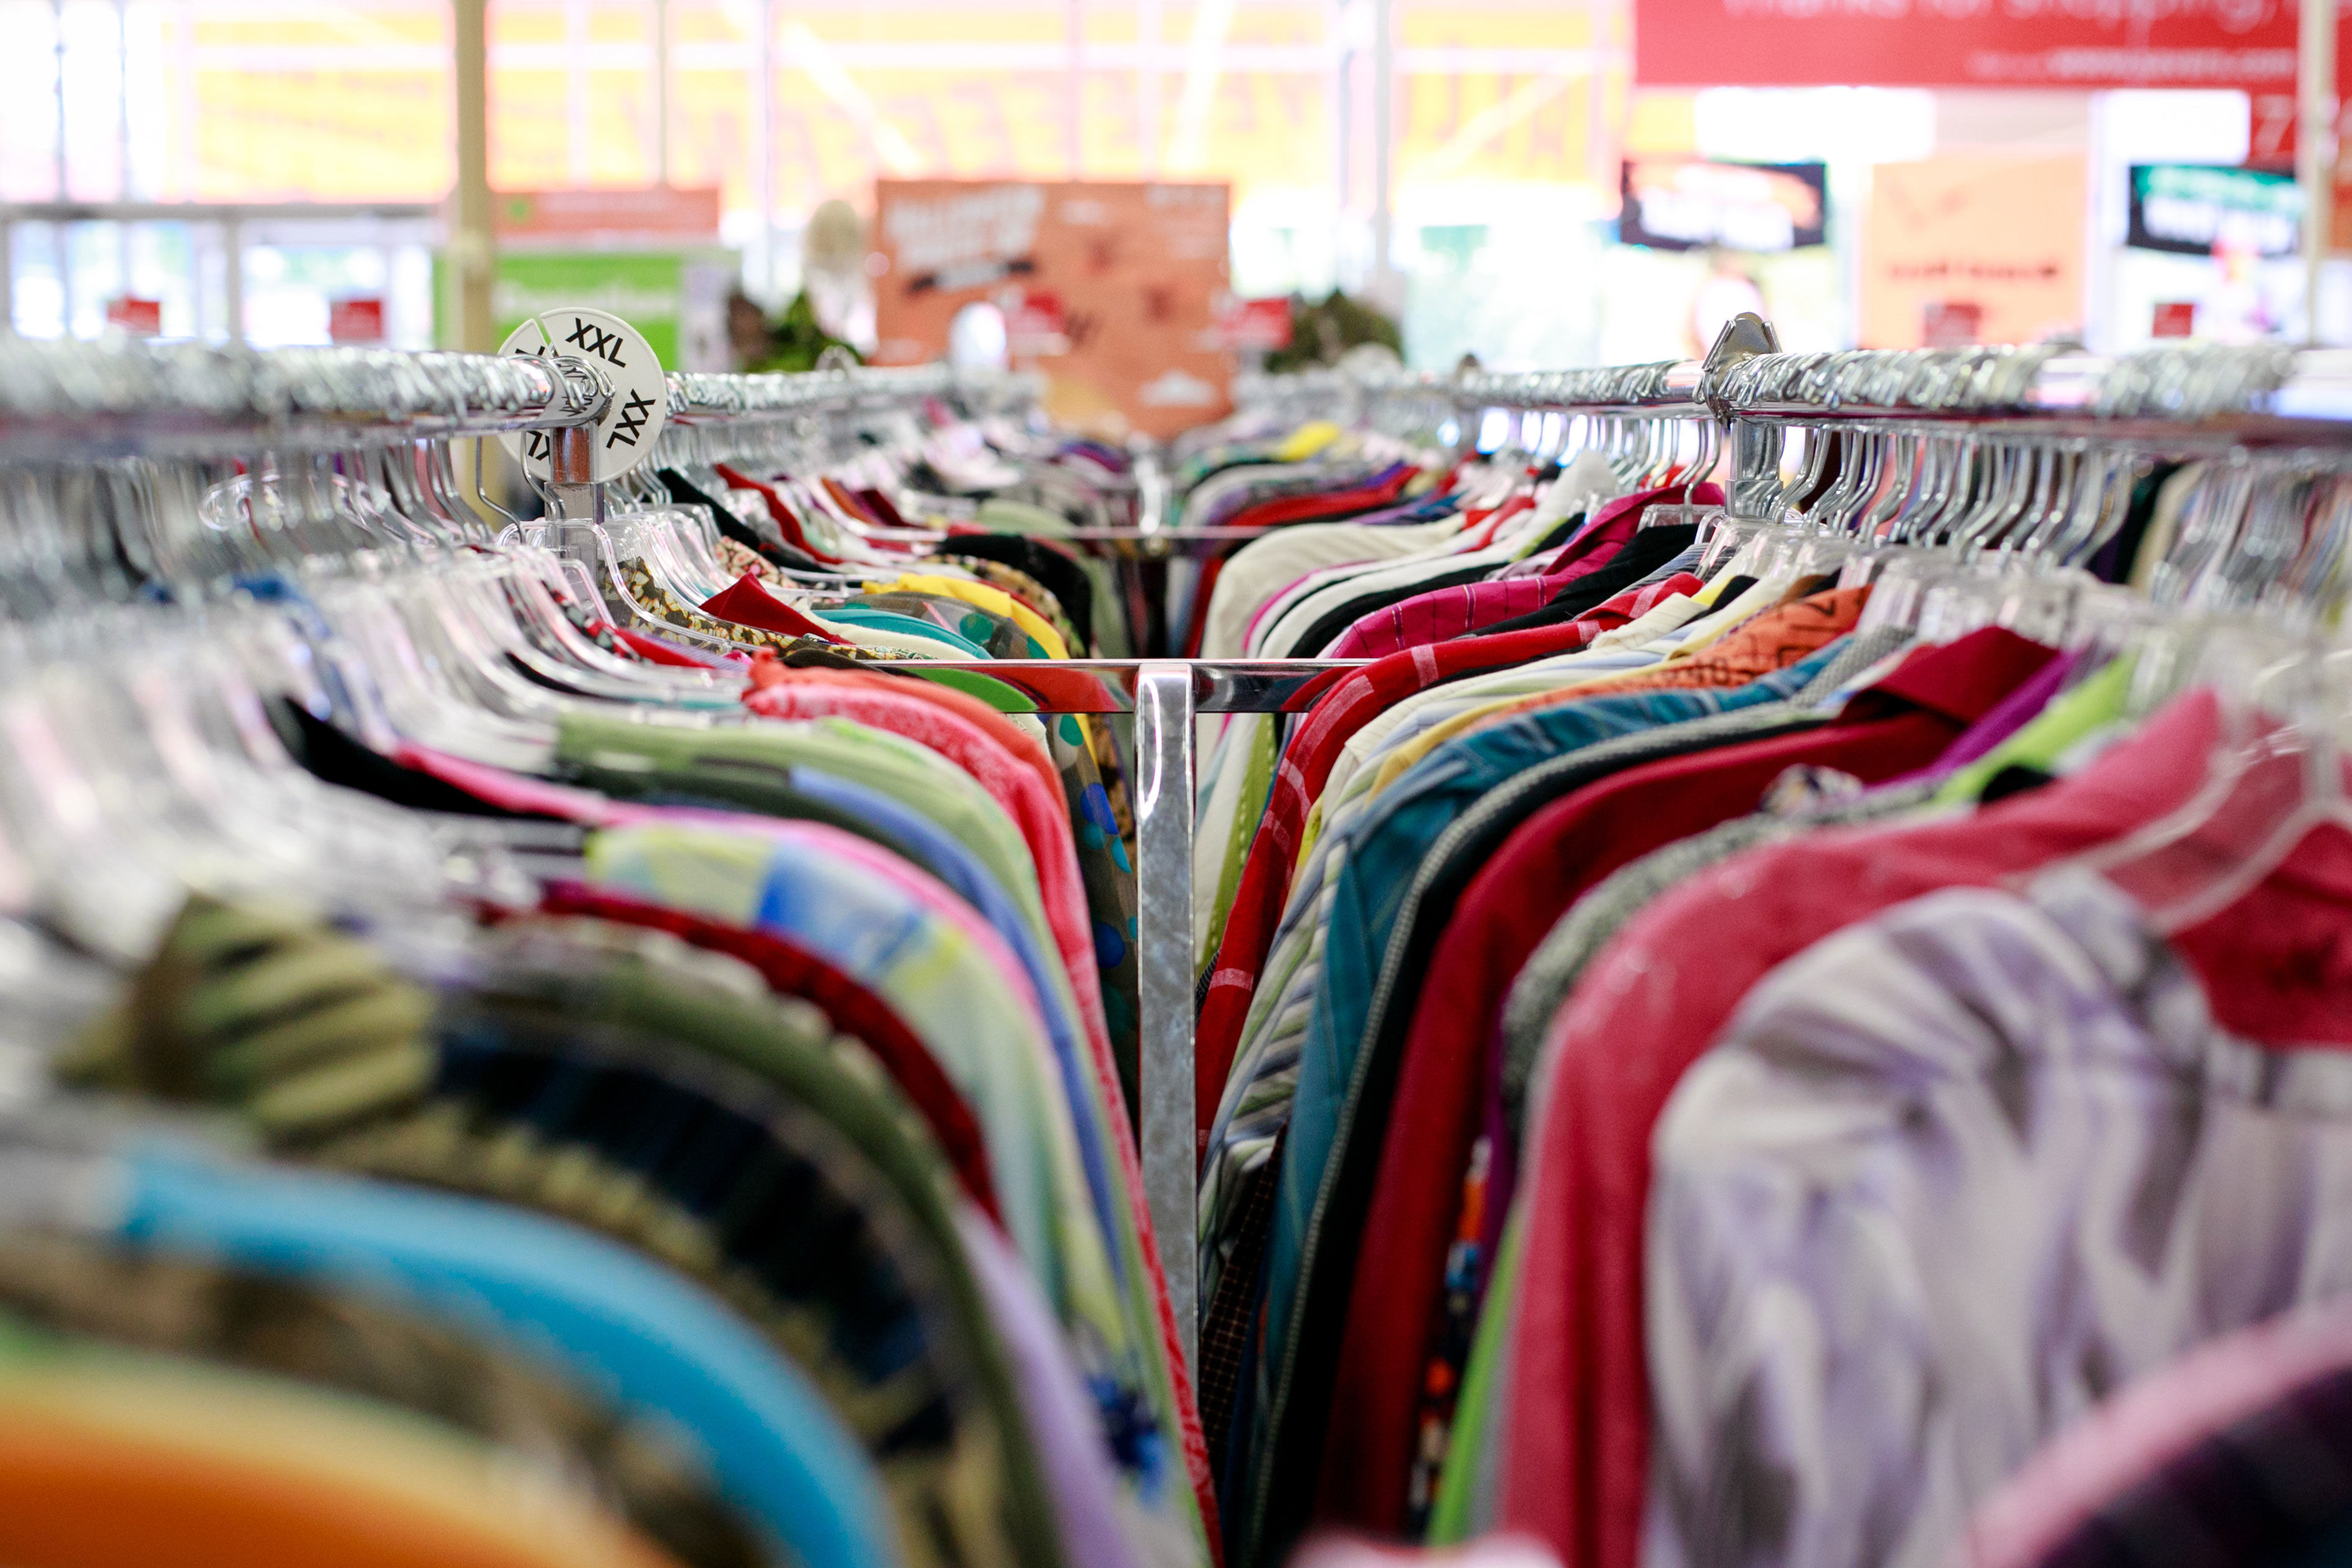 10 Shopping Tips For Scoring The Best Finds At A Thrift Store ... bfcf961365c